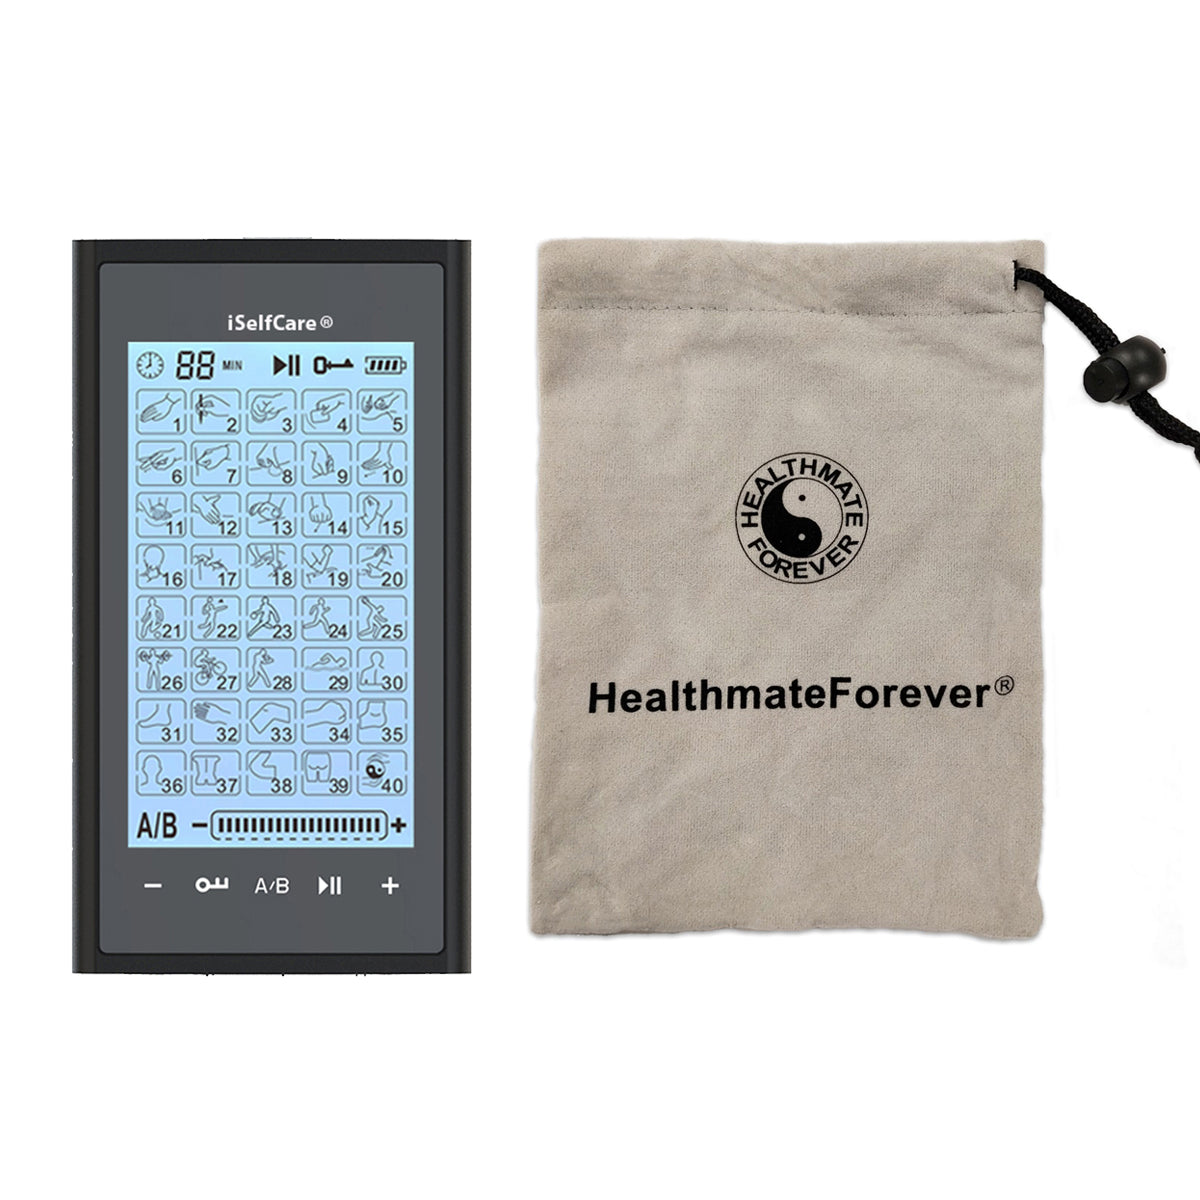 2020 Version 40 Modes T40AB2 iSelfCare® TENS unit & Muscle Stimulator - 2 Year Warranty - HealthmateForever.com